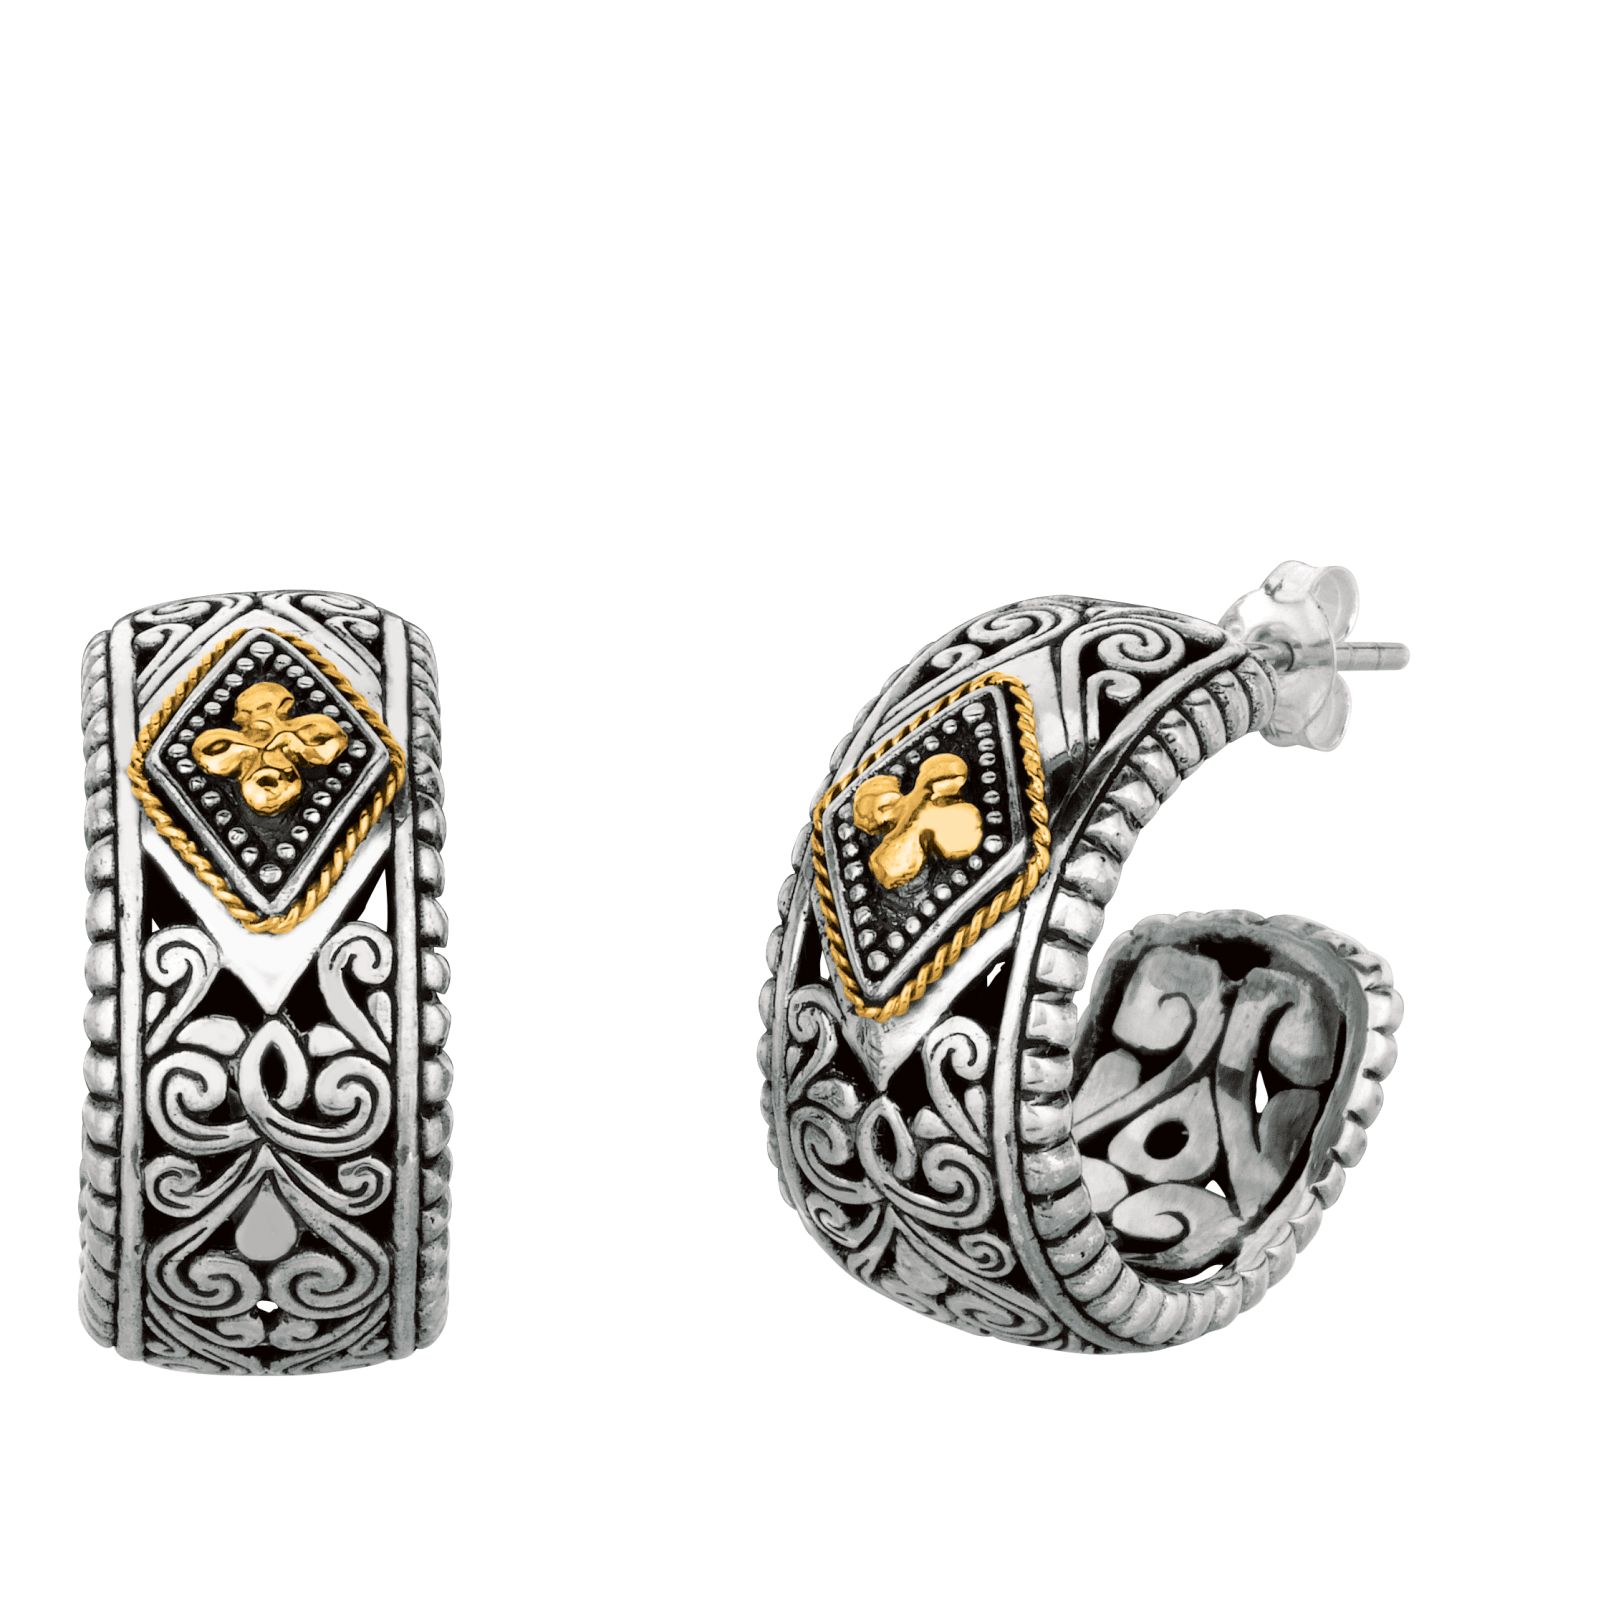 52c229bf67c3f 18K Yellow Gold & Sterling Silver Byzantine Hoop Earrings - Charles ...